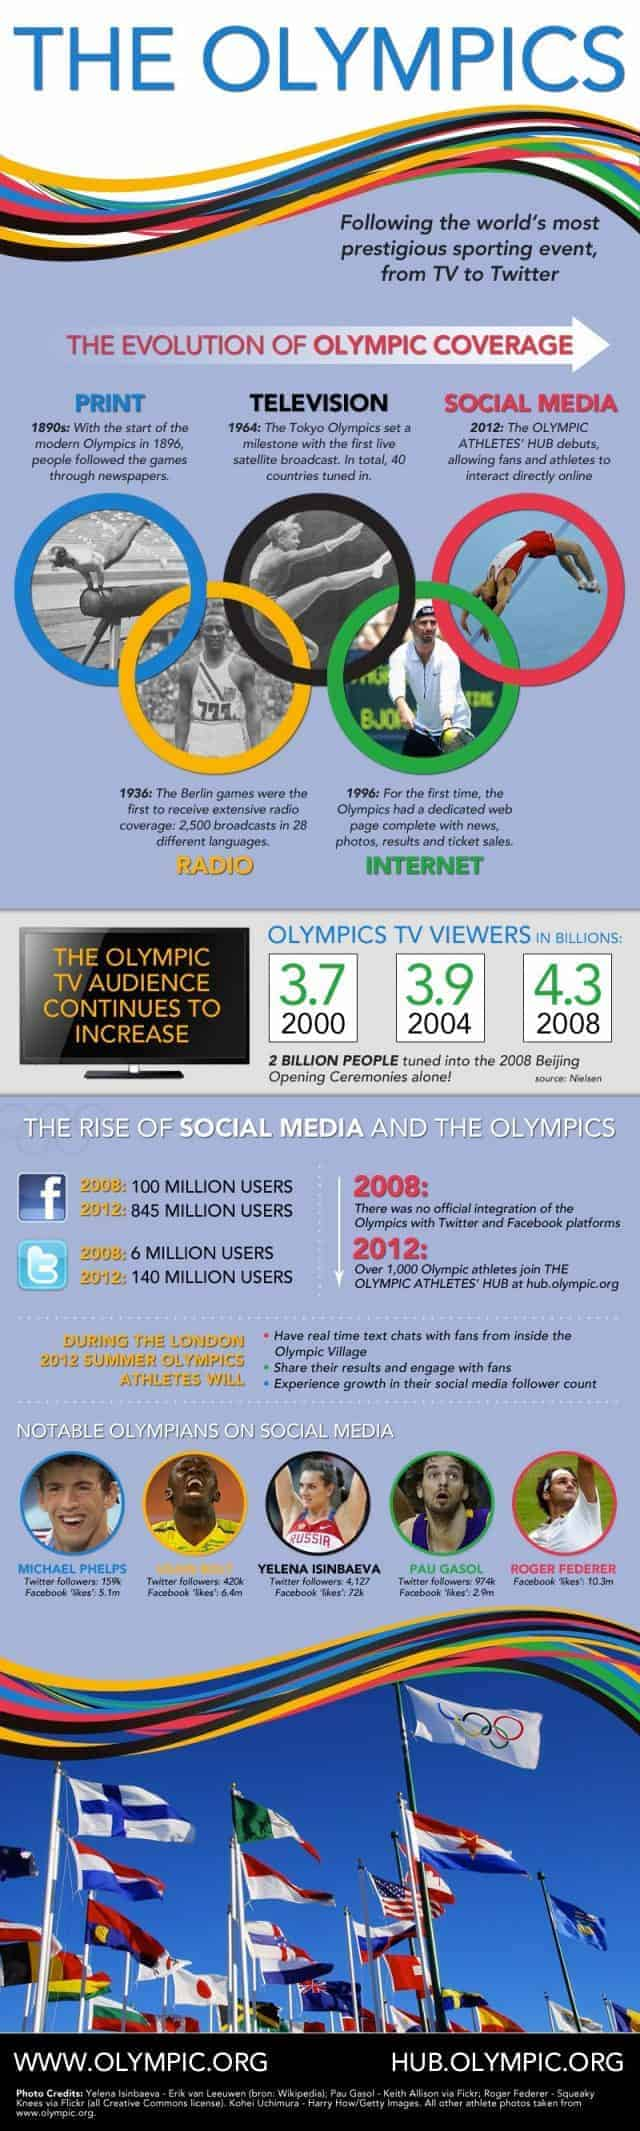 The Evolution of Olympic Coverage [infographic]